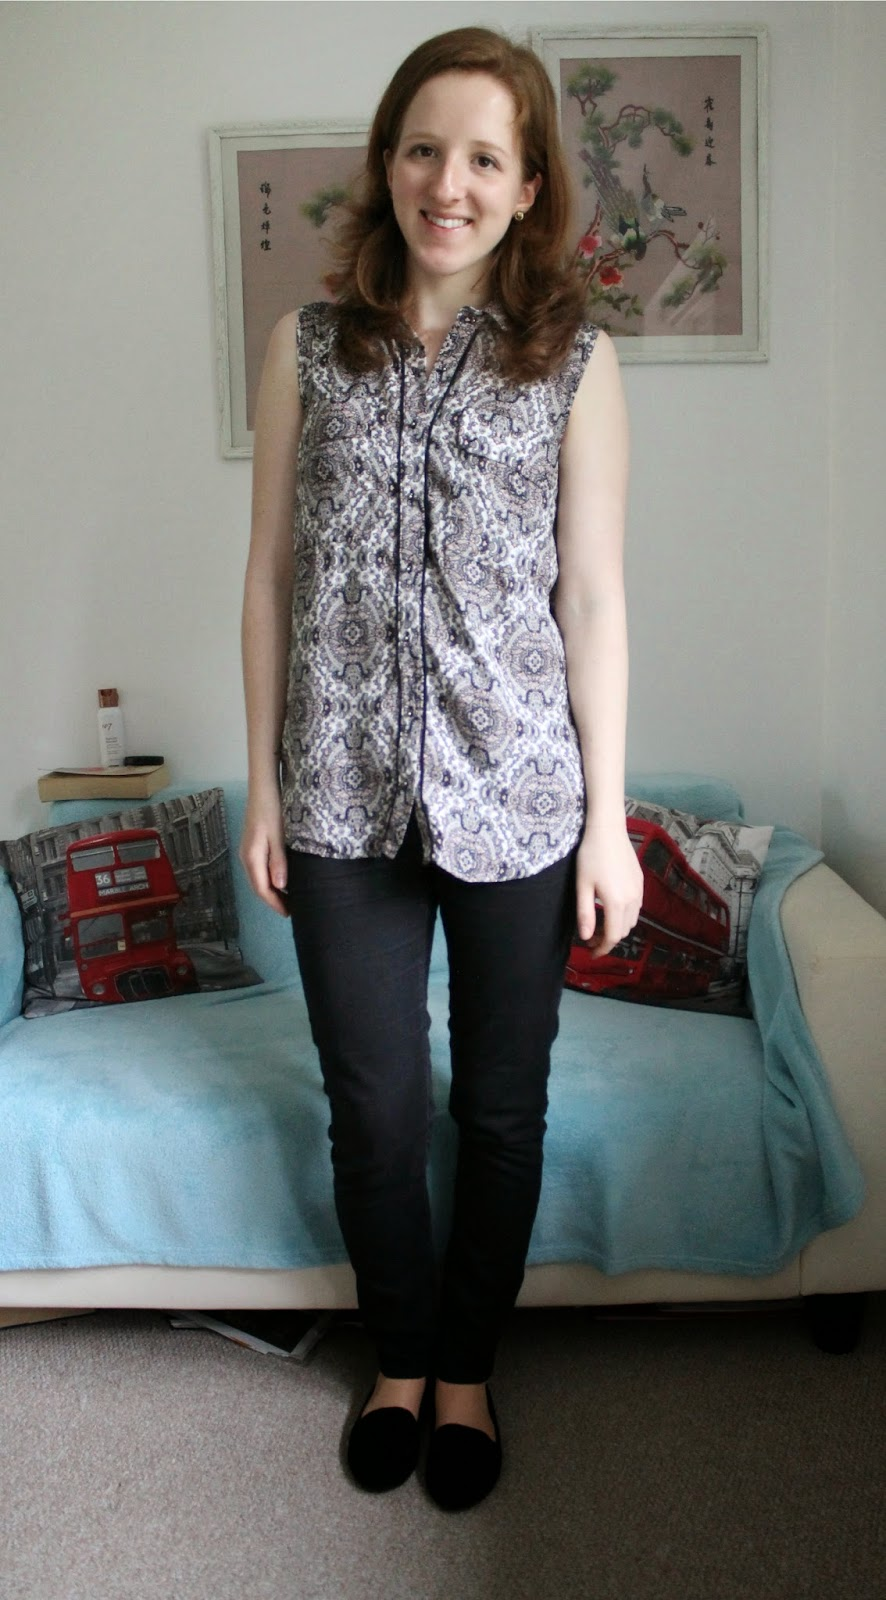 OOTD: Paisley Shirt and Slipper